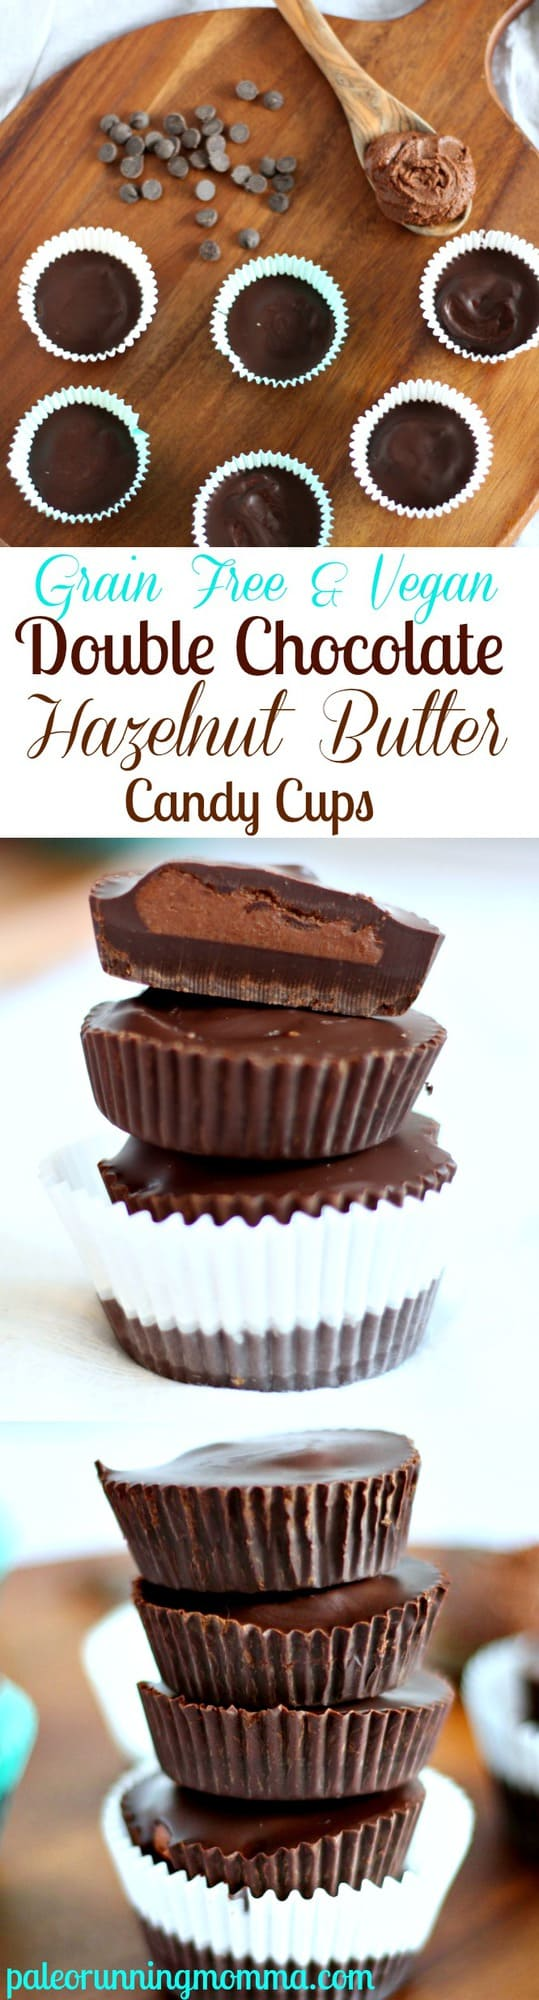 Rich and Creamy Double Chocolate Hazelnut Butter Cups - Vegan and grain free with a stricter paleo option! #grainfree #paleo #glutenfree #dairyfree